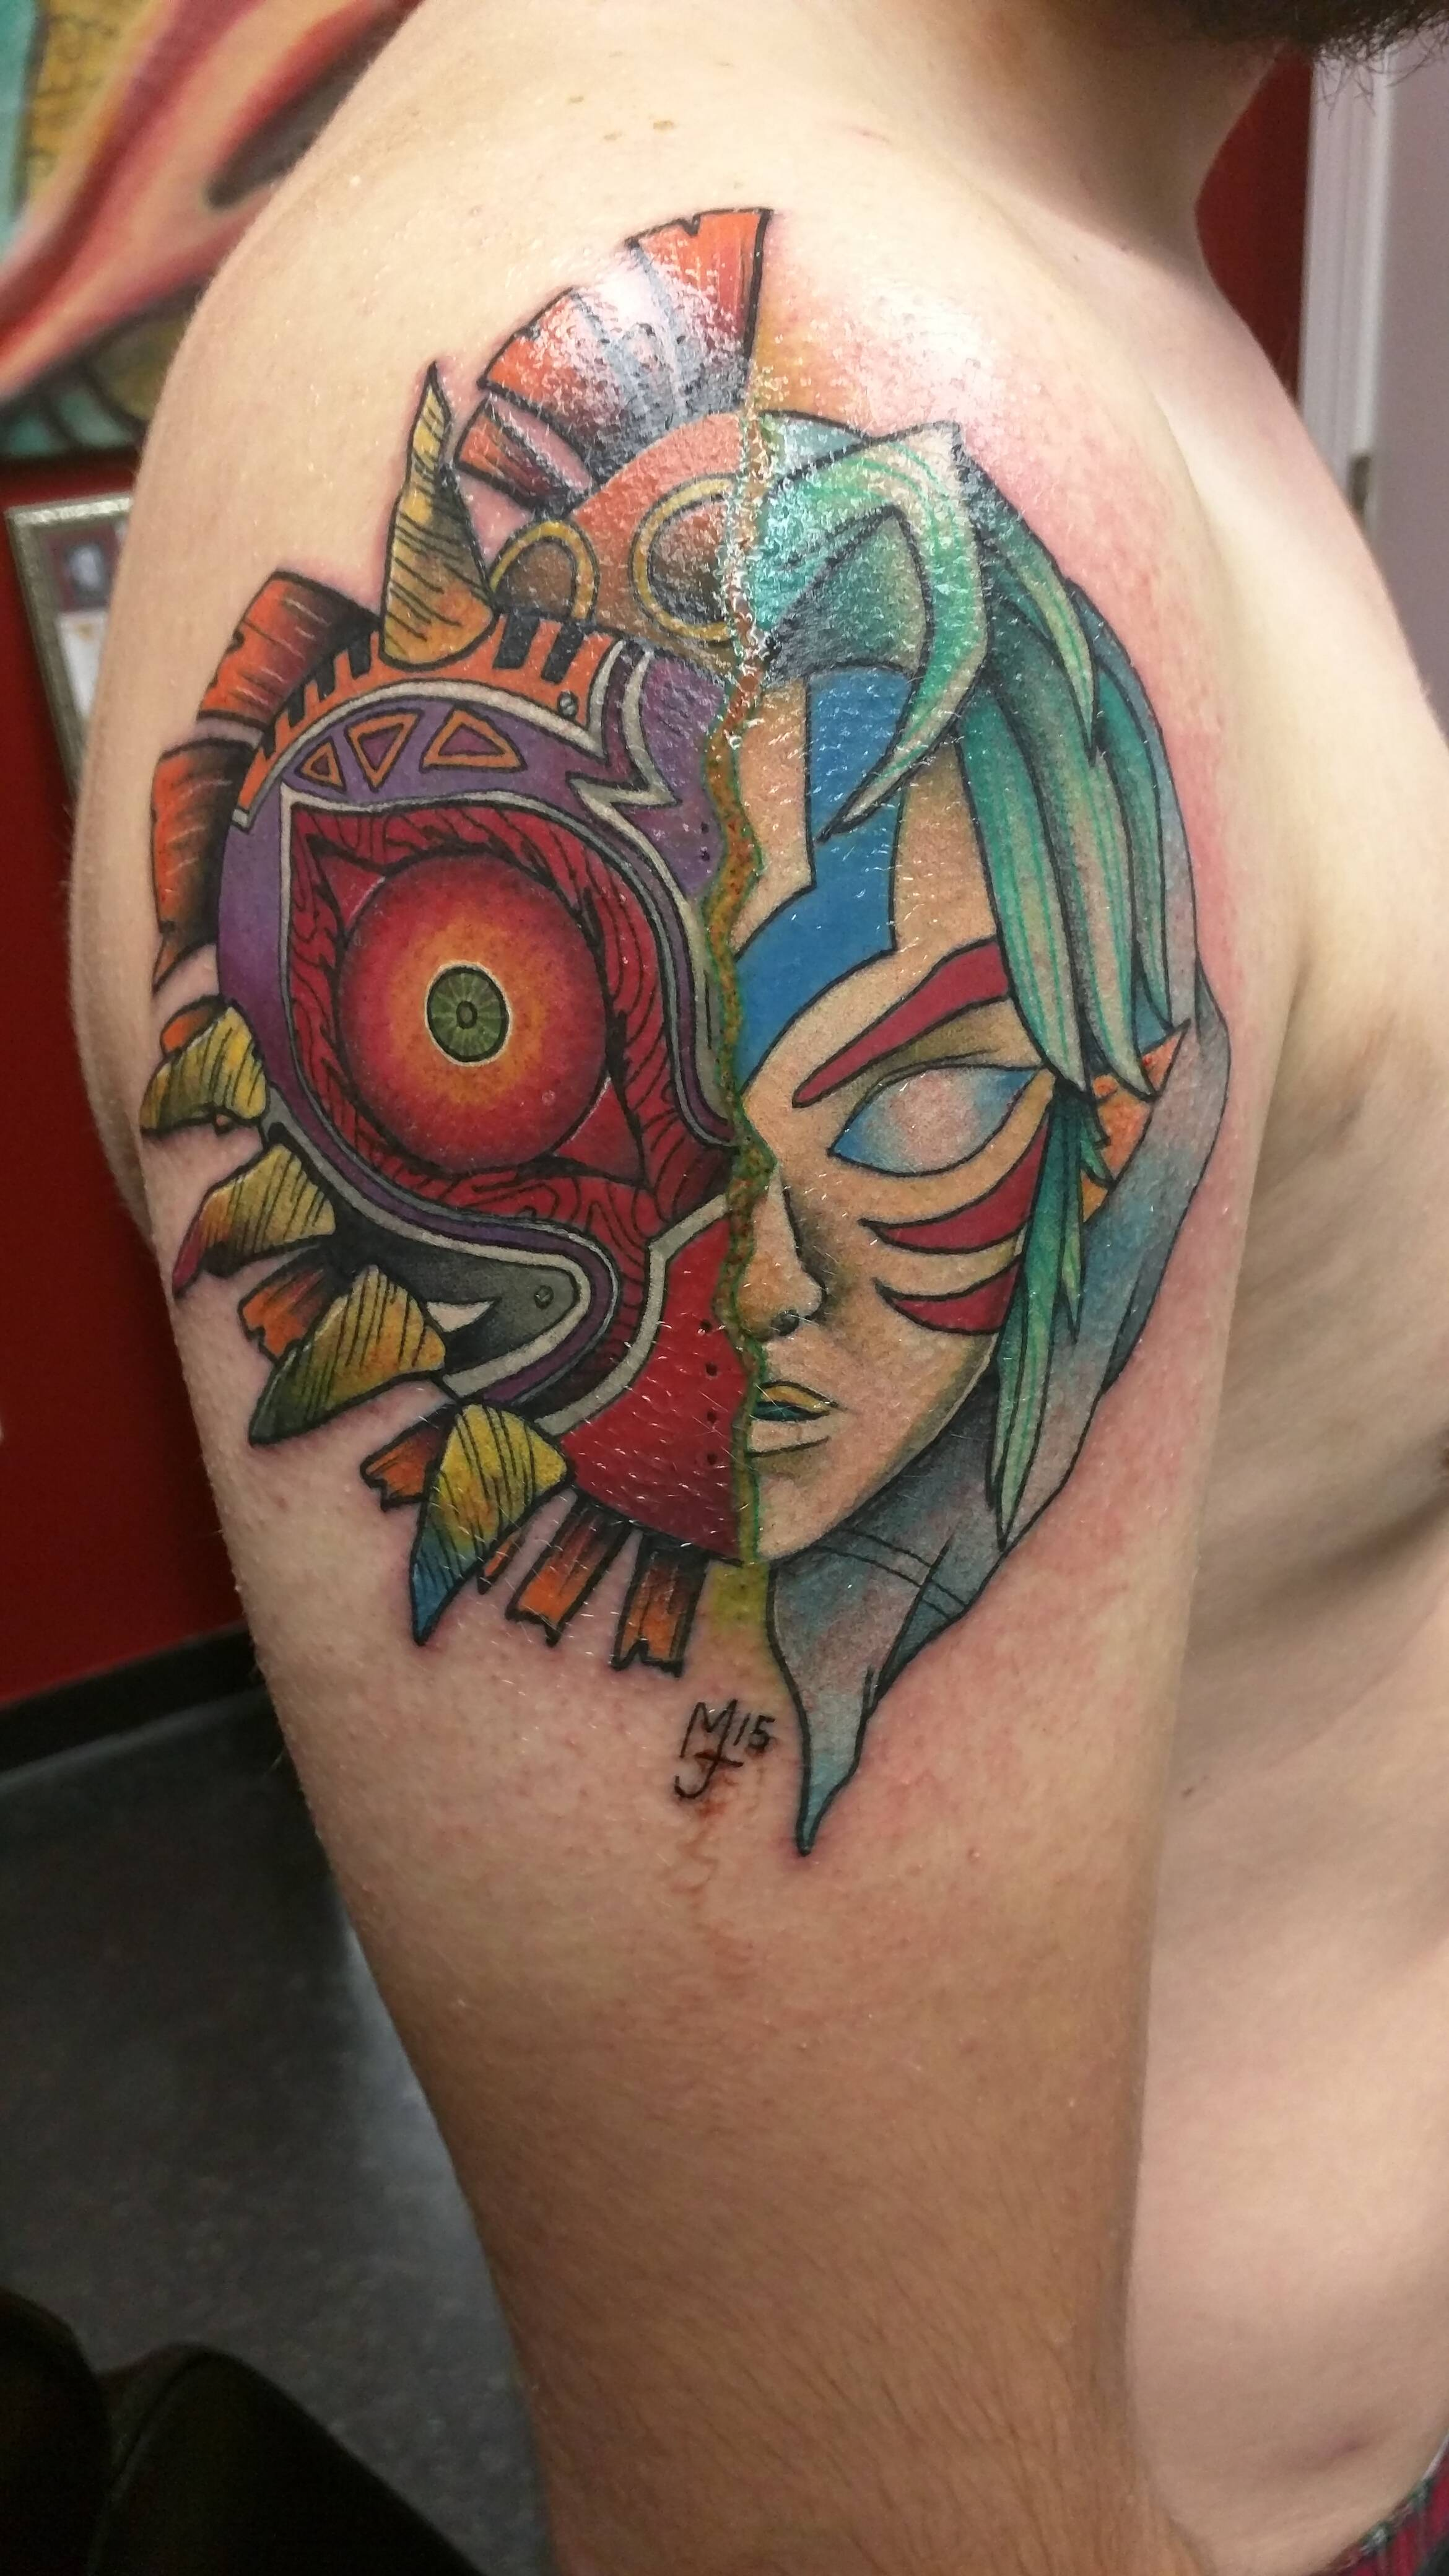 Tattoos For Men 1500 Ideas And Concepts For Different